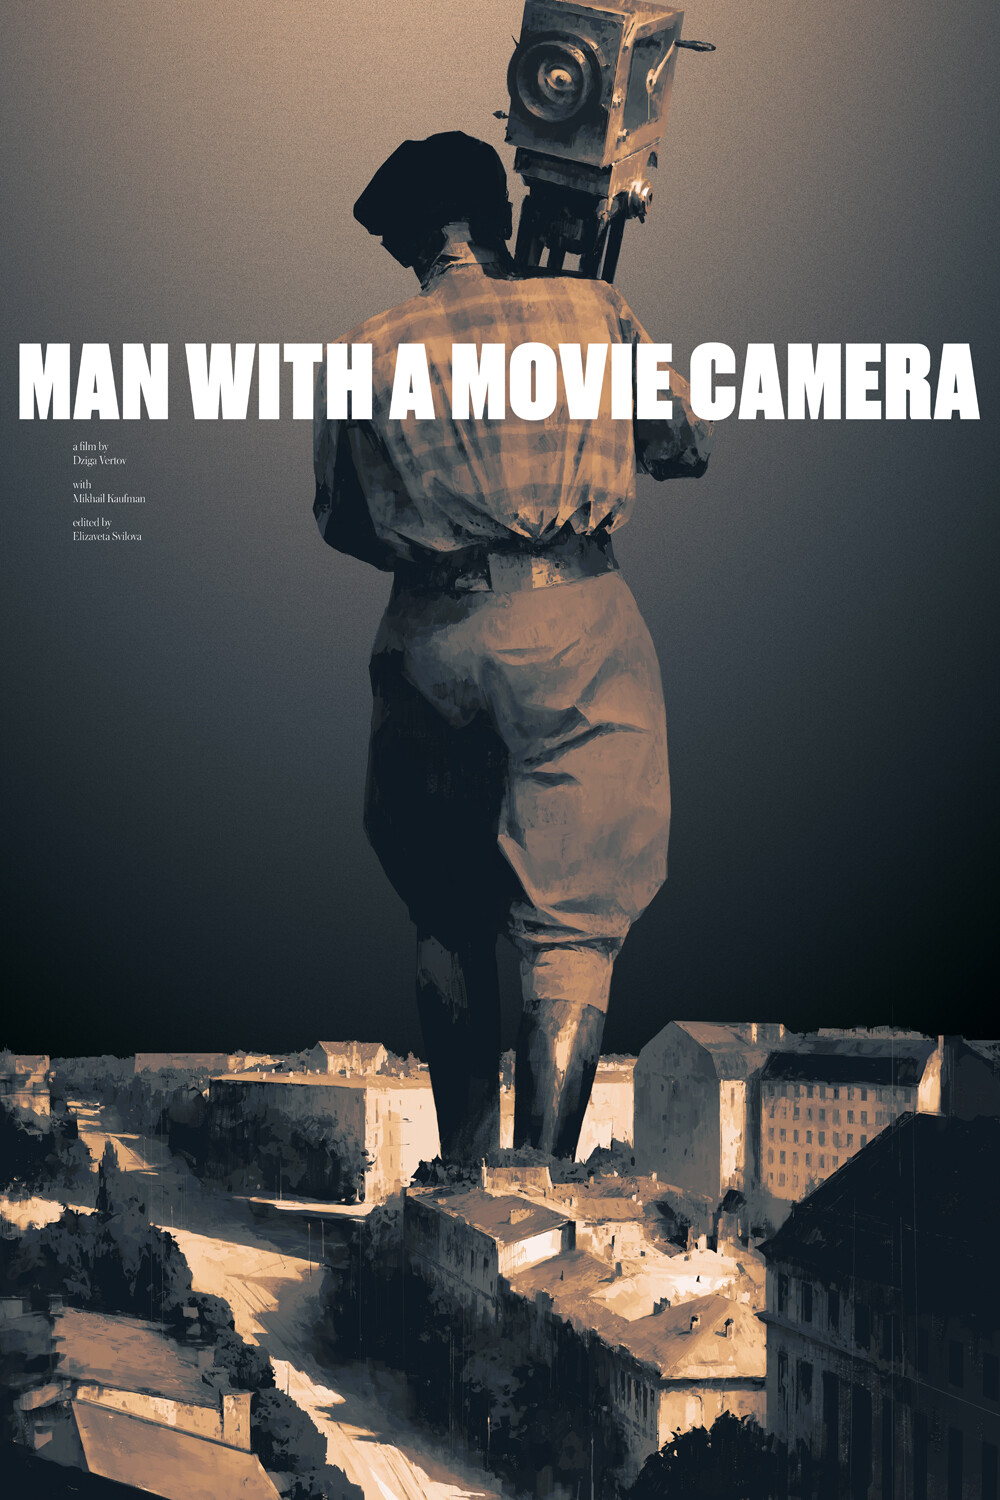 Piotr jablonski man with a movie camera eng versions